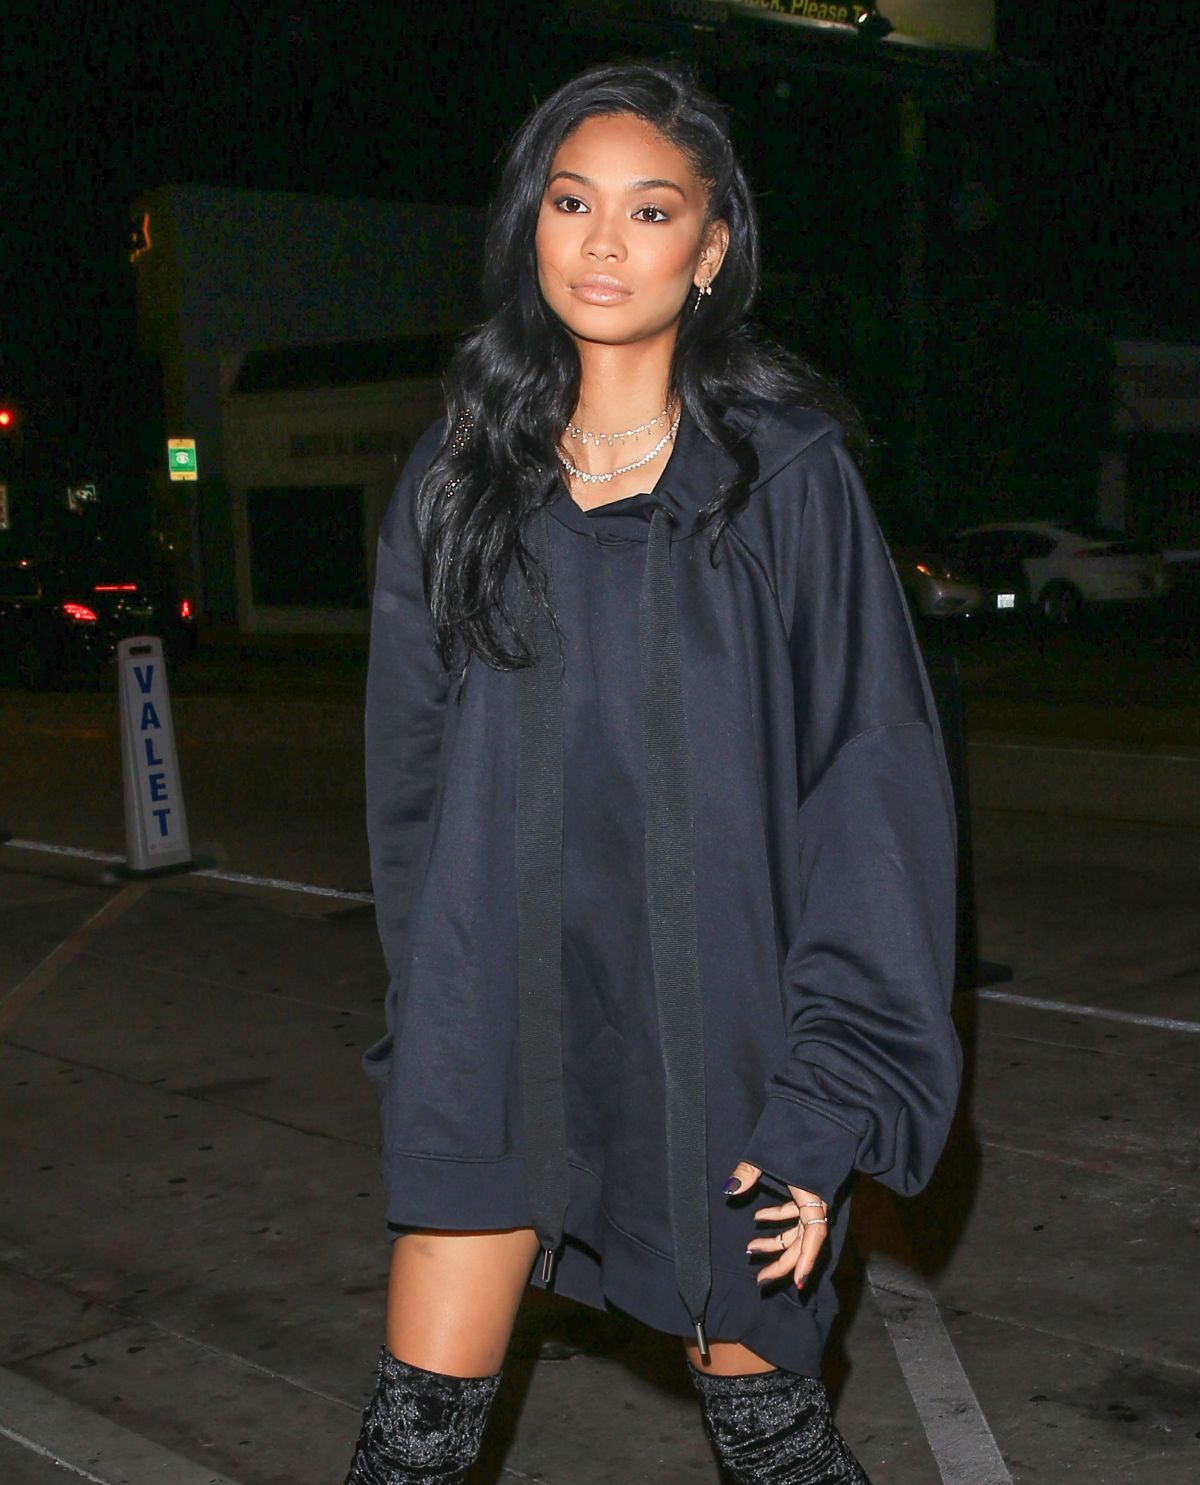 Chanel Iman United States nude (13 foto and video), Pussy, Hot, Twitter, underwear 2006